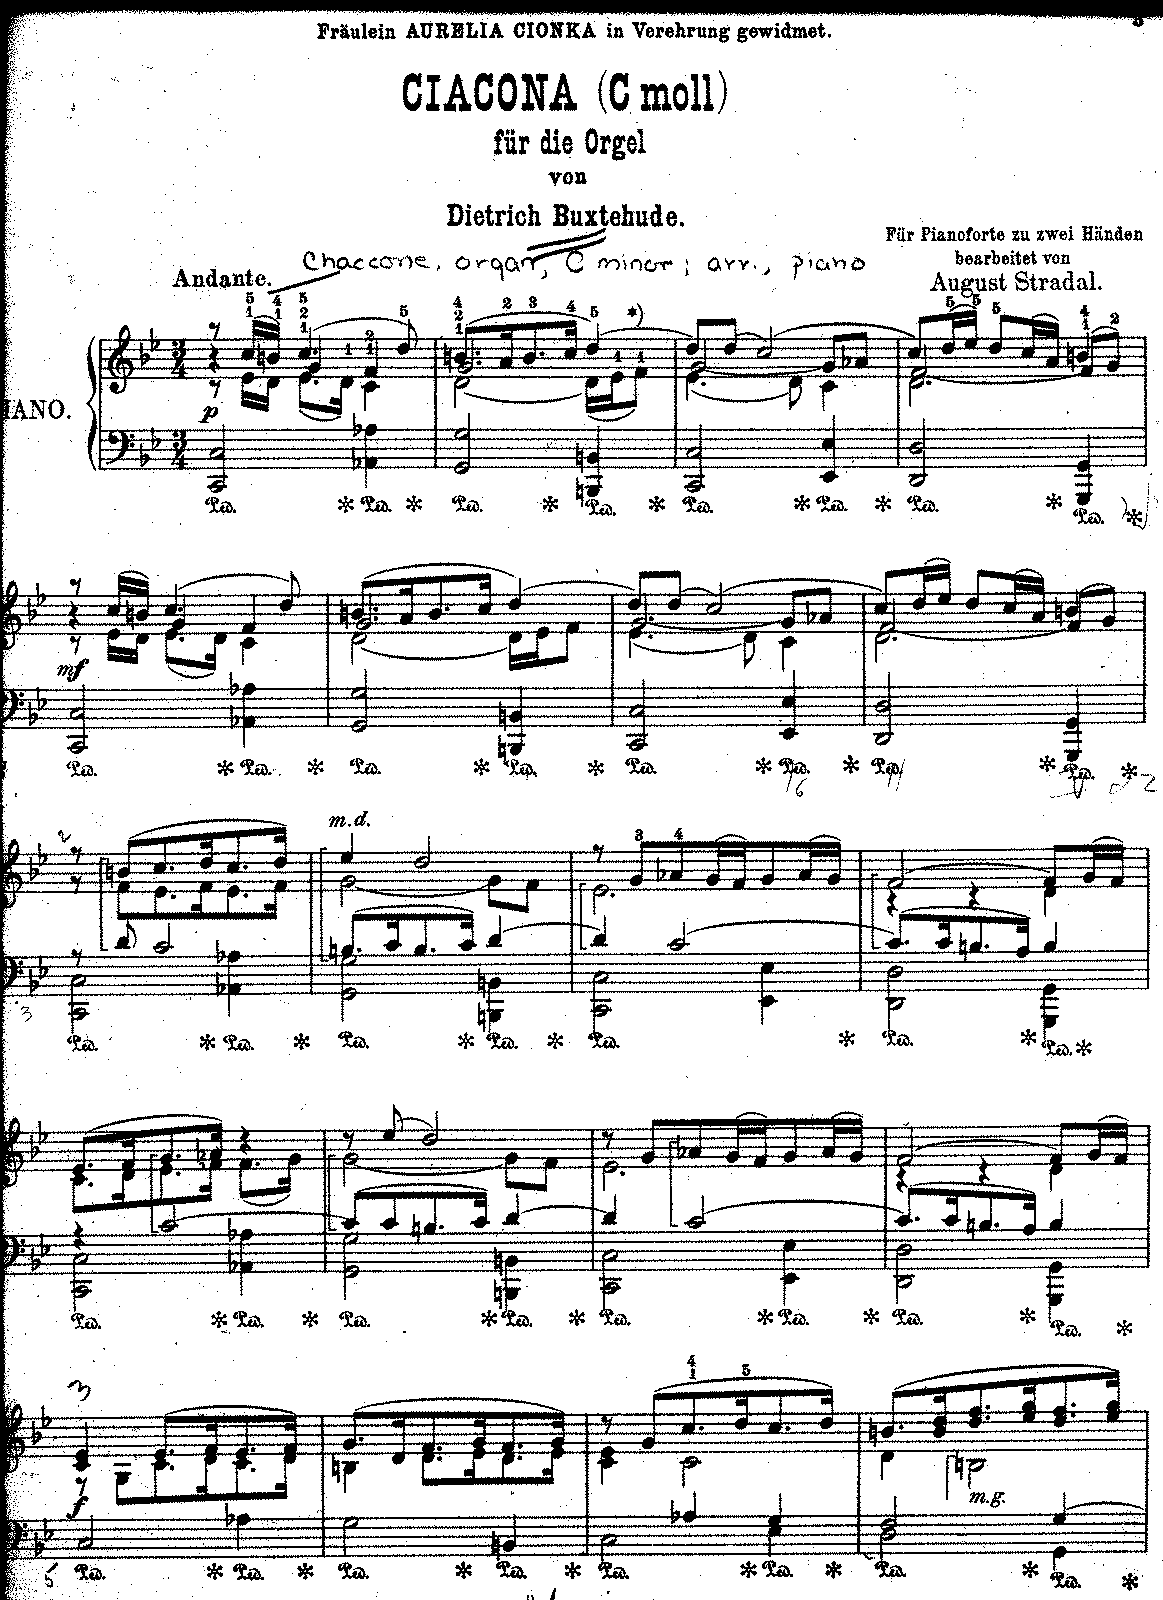 PMLP56719-Buxtehude-Stradal Chaconne in c.pdf